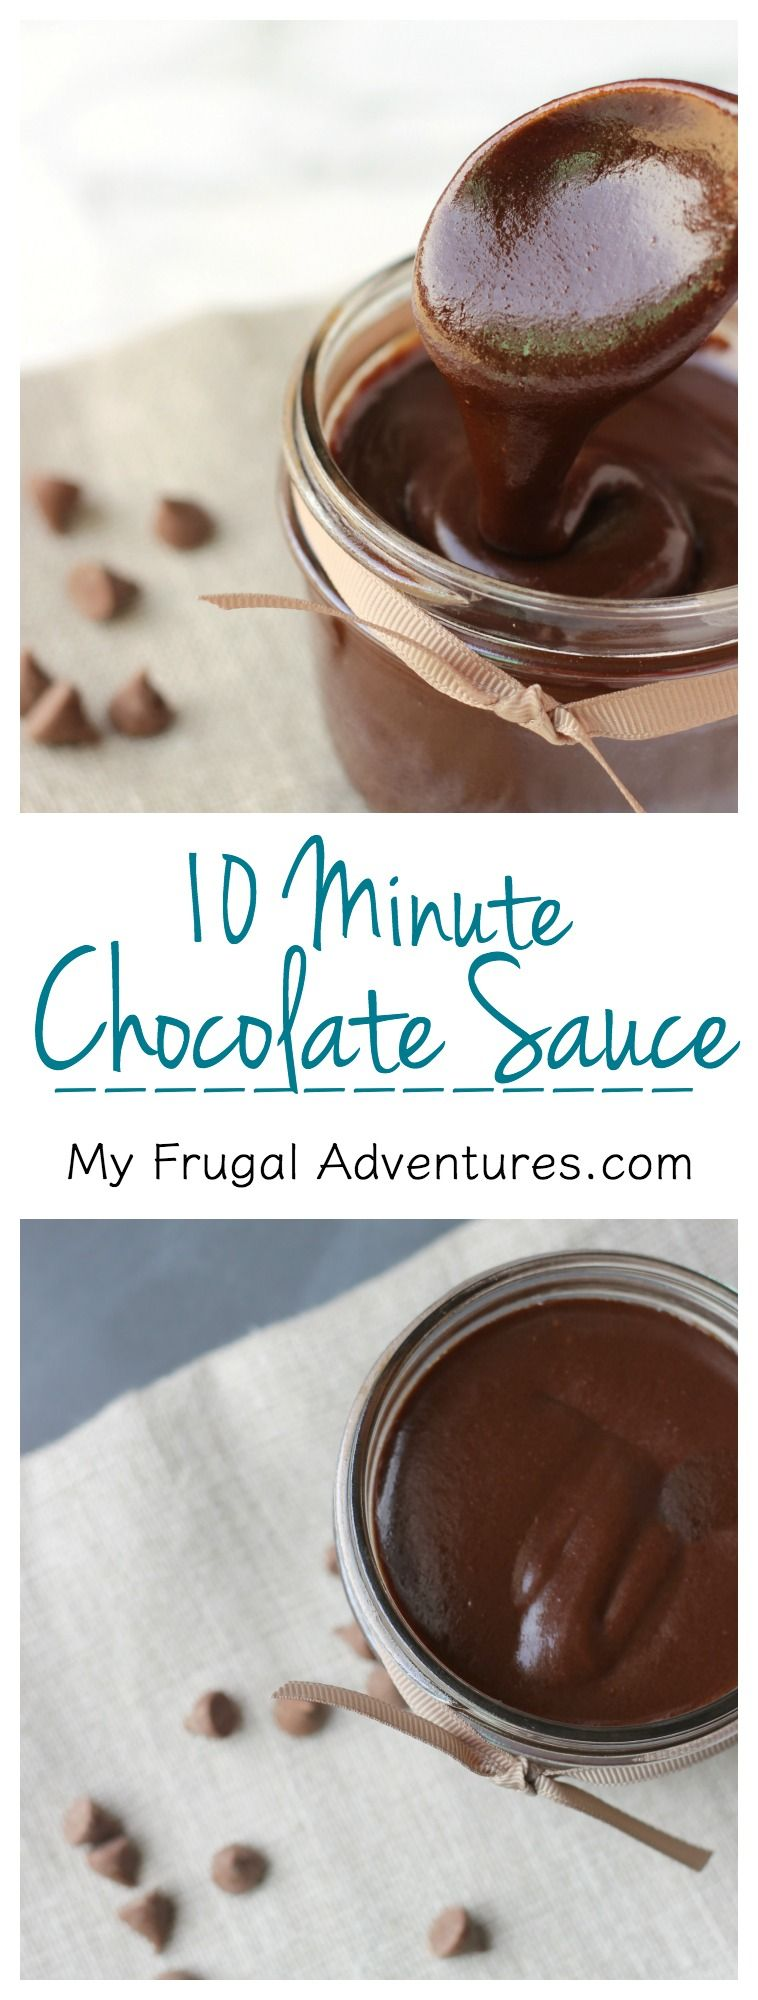 10 Minute Homemade Chocolate Sauce- this is so rich and creamy and chocolately- heaven in a little jar.  Perfect for drizzling over fruit, in milk or topping ice cream and cakes.